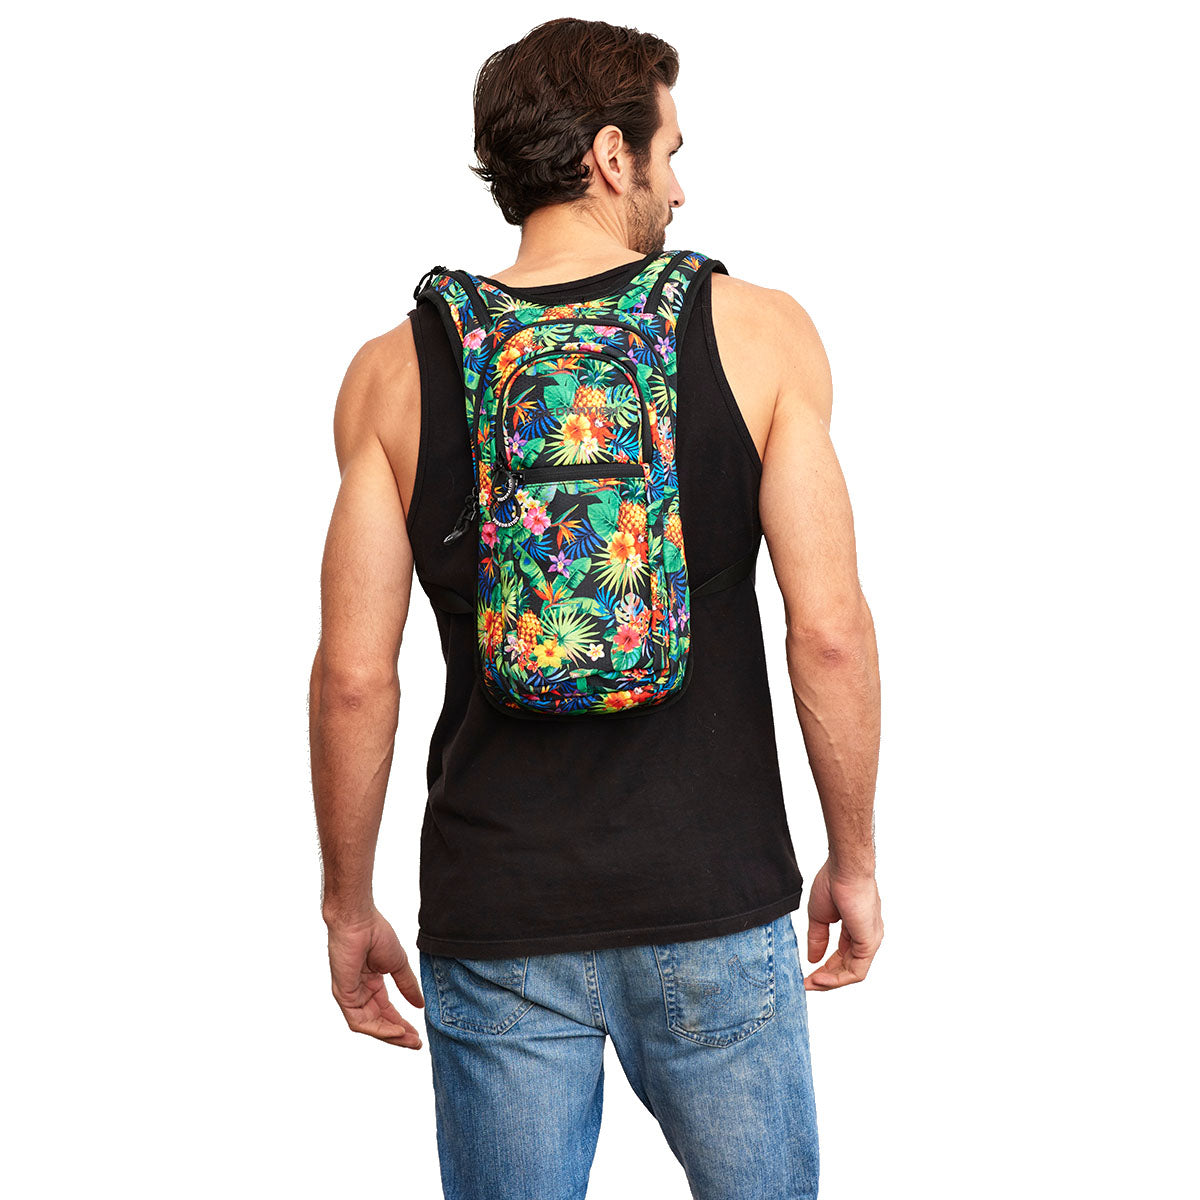 Back shot of Male wearing Tropical Printed Festival VIP Hydration Pack